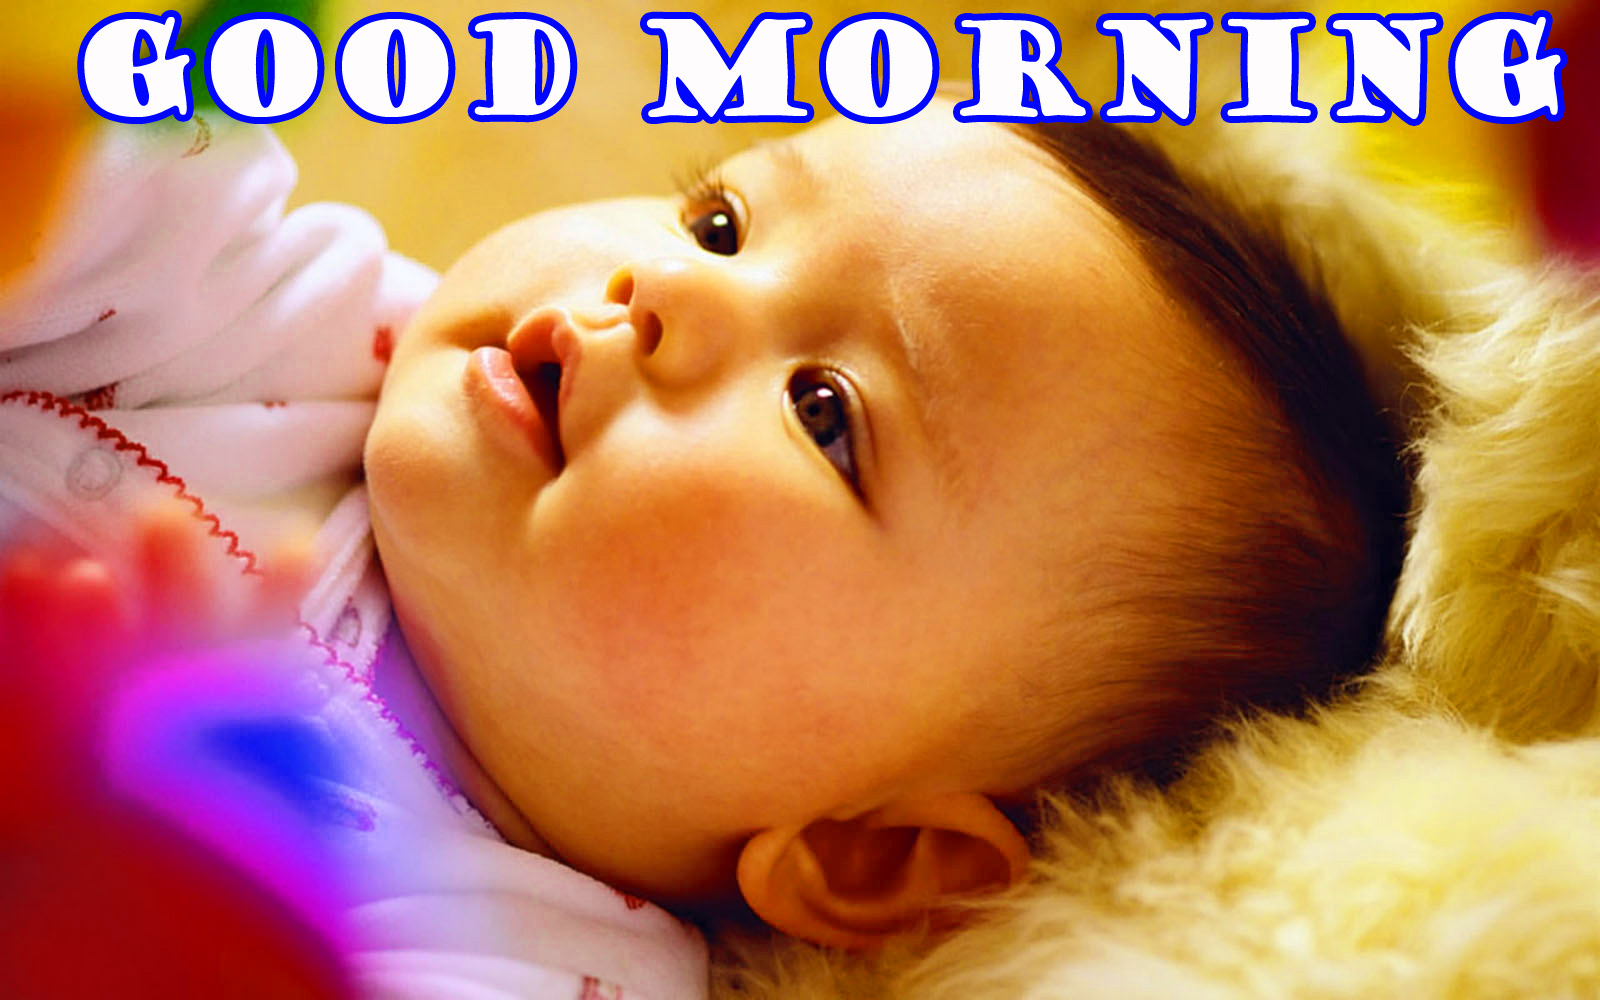 गुड मॉर्निंग New Wonderful Good Morning Wallpaper Pictures Photo For Whatsapp